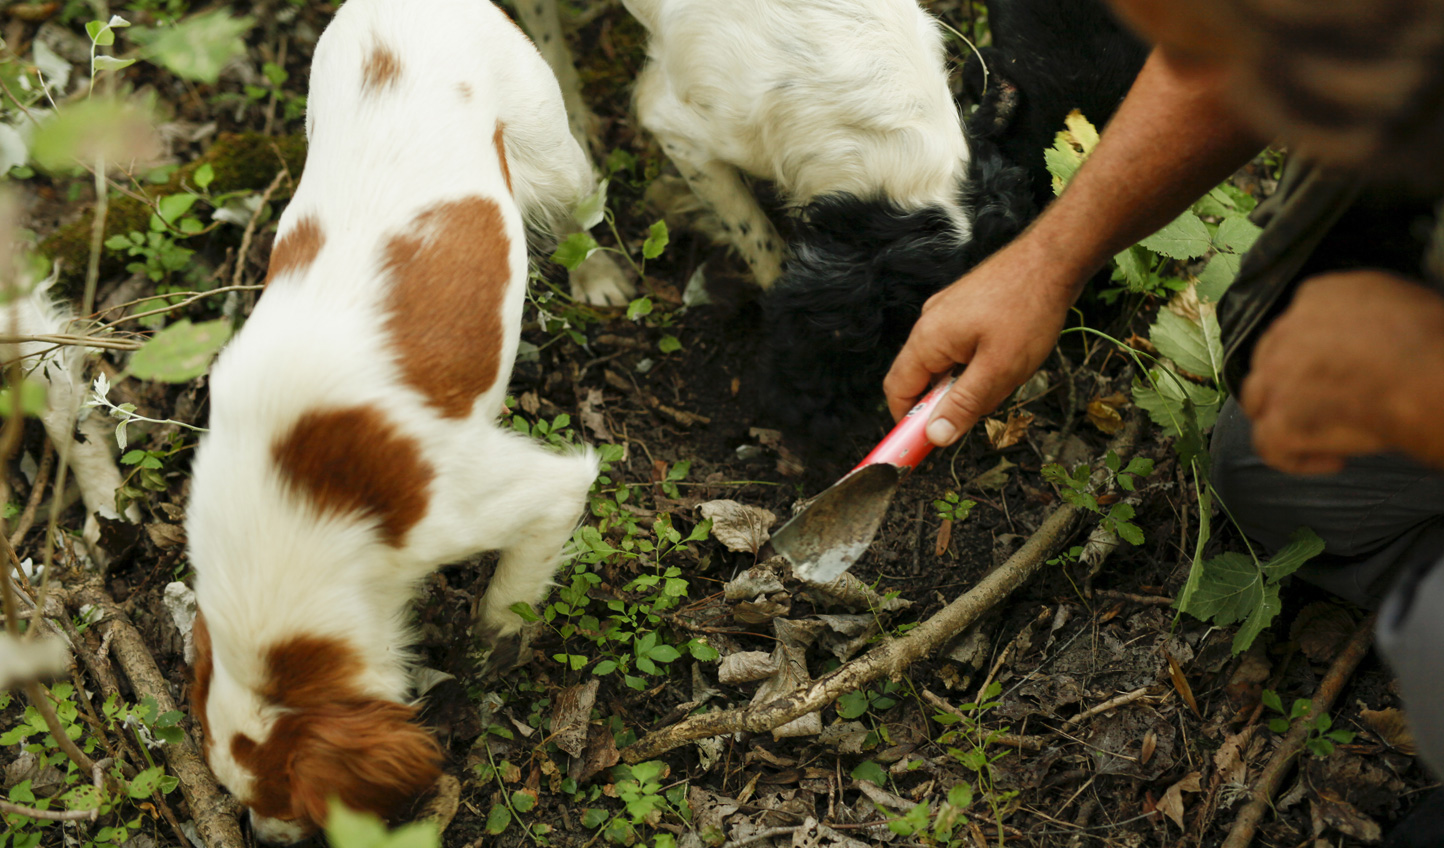 Join a local truffle hunter and go in search yourself